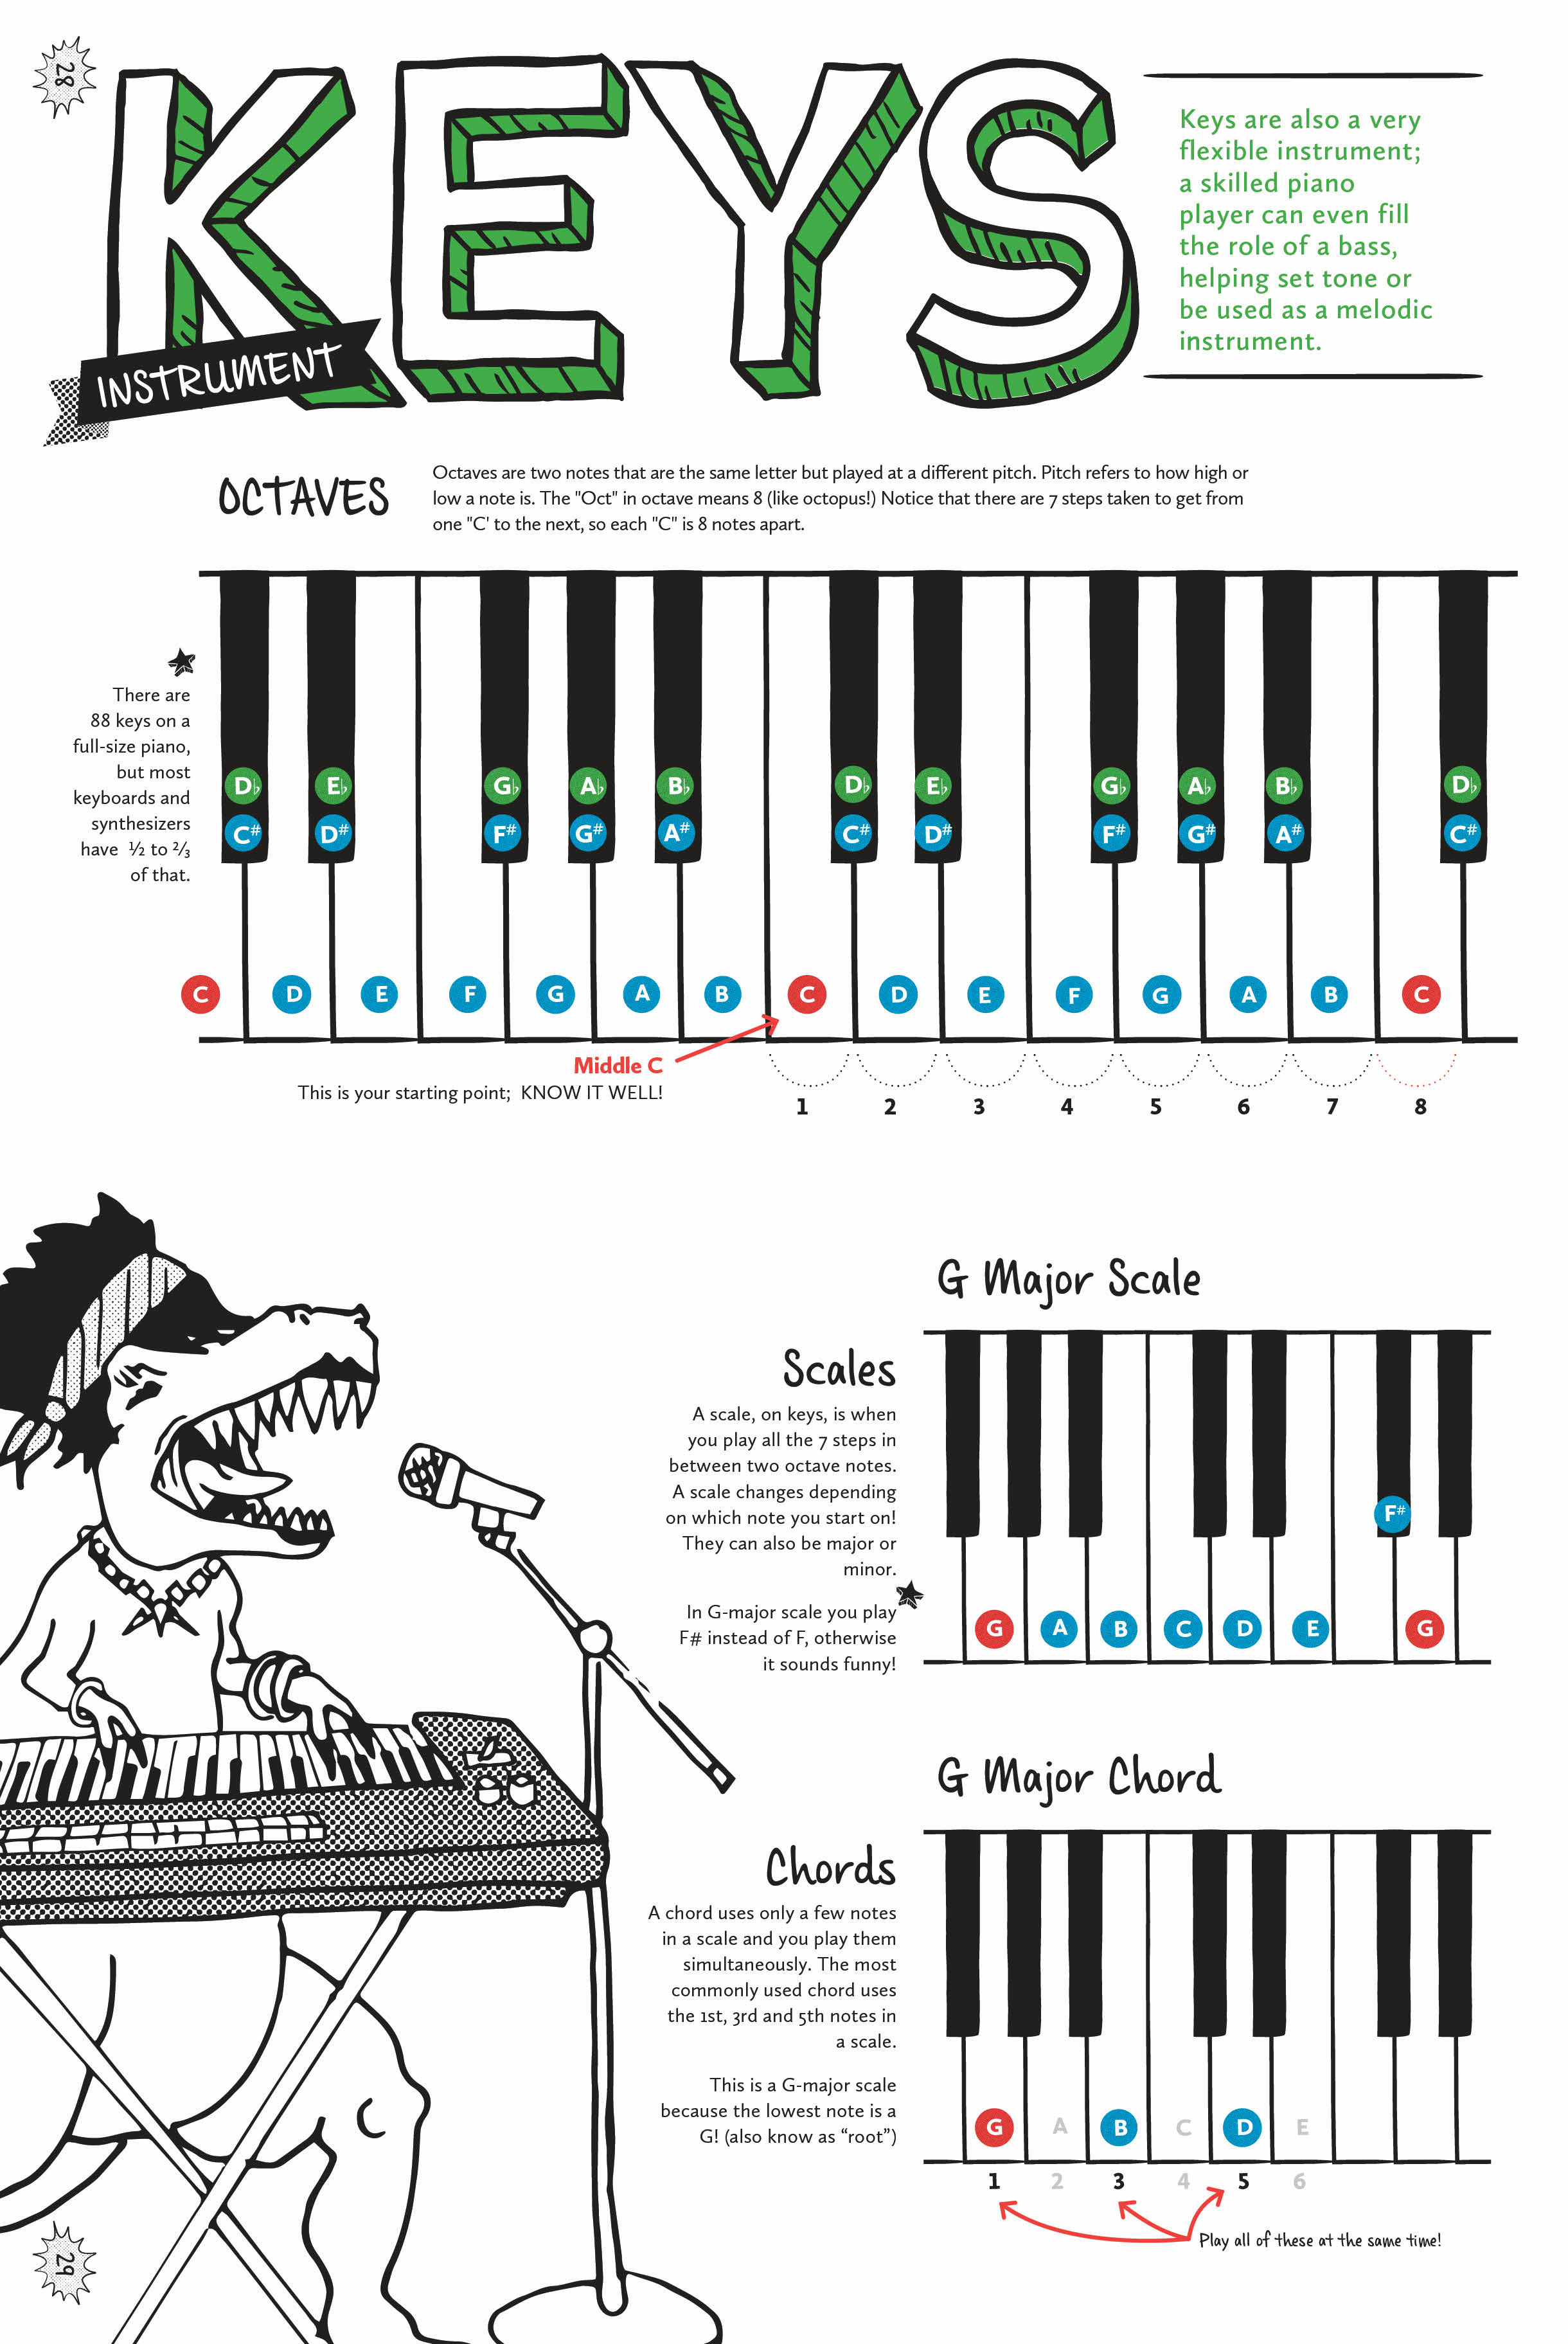 The design of the Keys pages of the workbook, explaining octaves, scales and chords as they are played on keyboards. The diagrams are accompanied by an illustration of an alligator playing keys and singing in to a microphone.